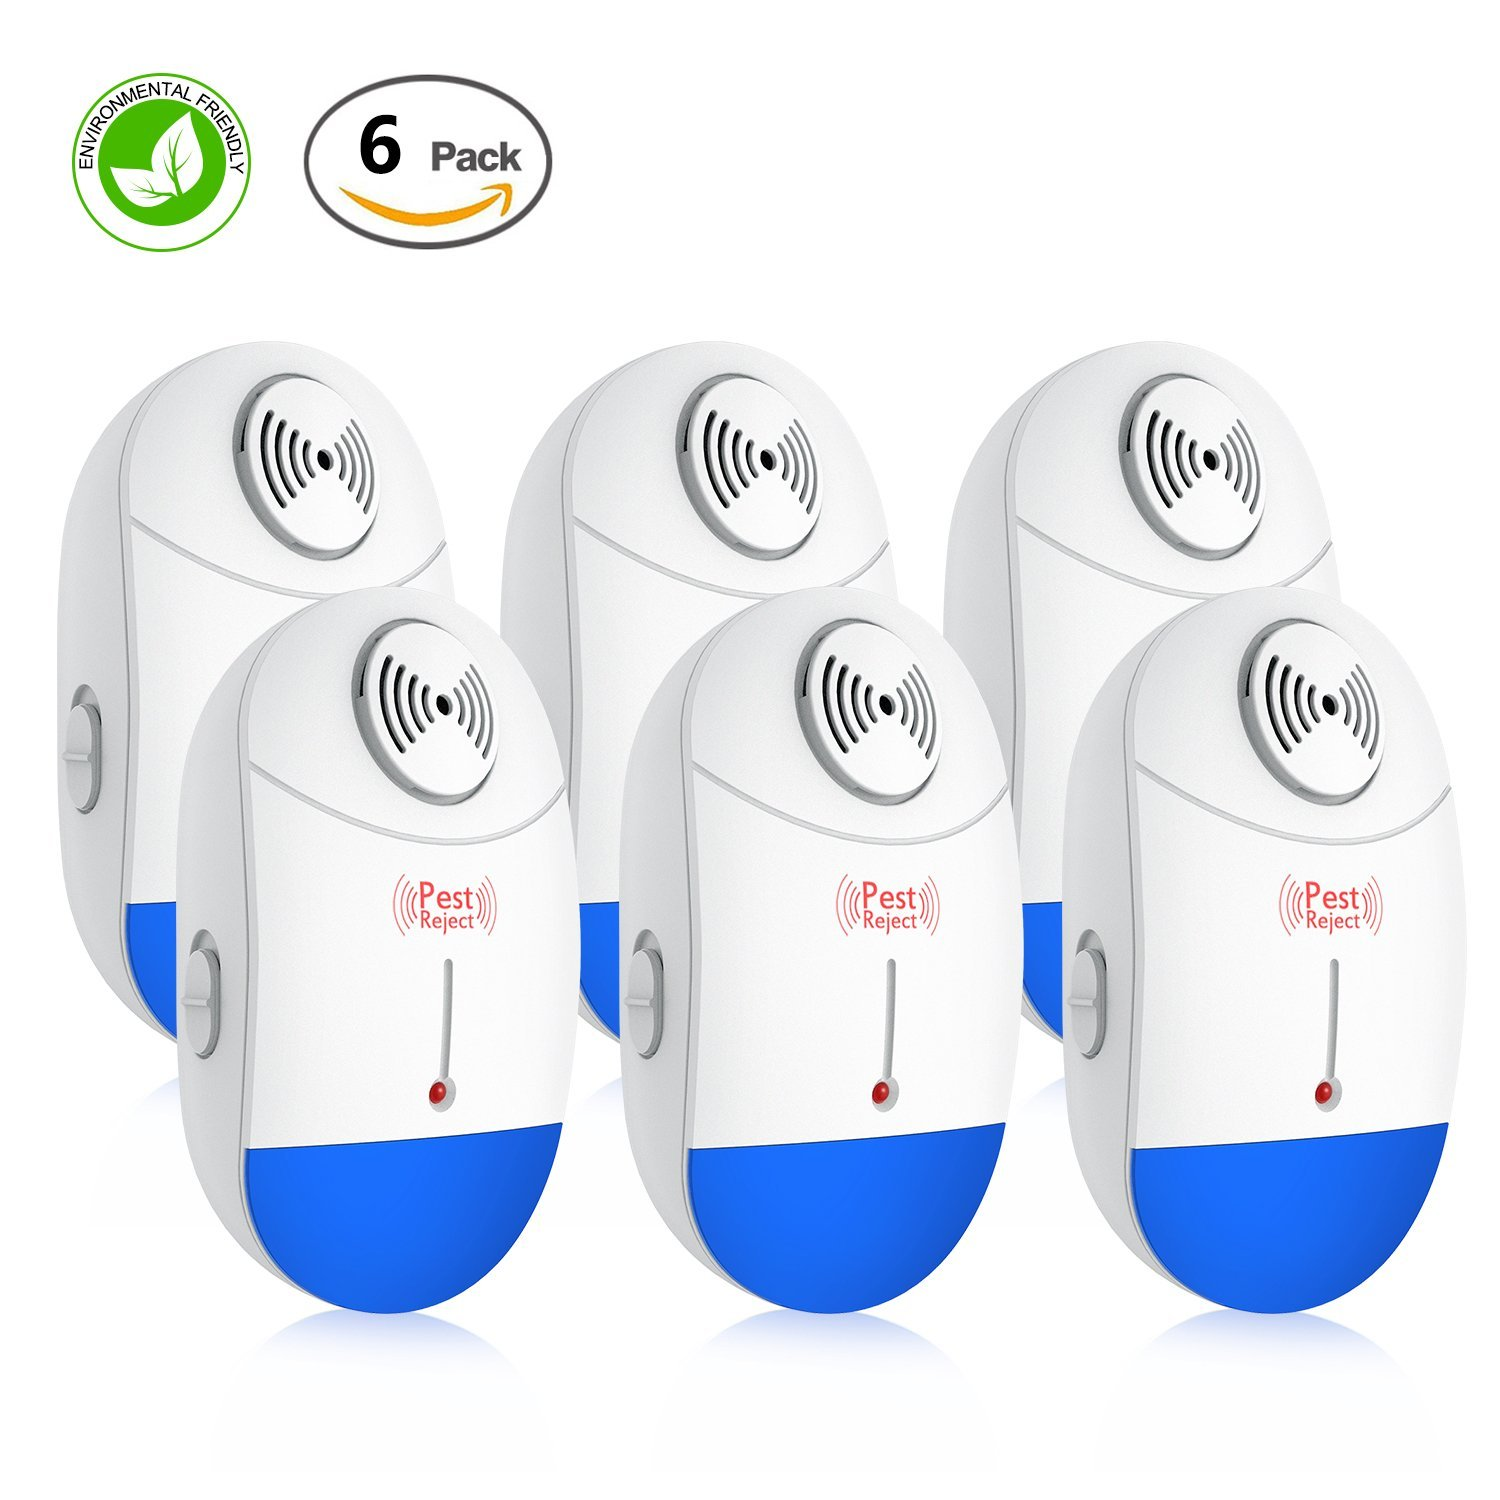 Mice Repellent Ultrasonic Pest Repeller - Electronic Pest Warrior Plug in Pest Control - Pest Reject for Indoor Mouse, Roach, Rodent, Insect, Ant, Bug, Spider, Rat - No More Roach killer & Mouse Trap